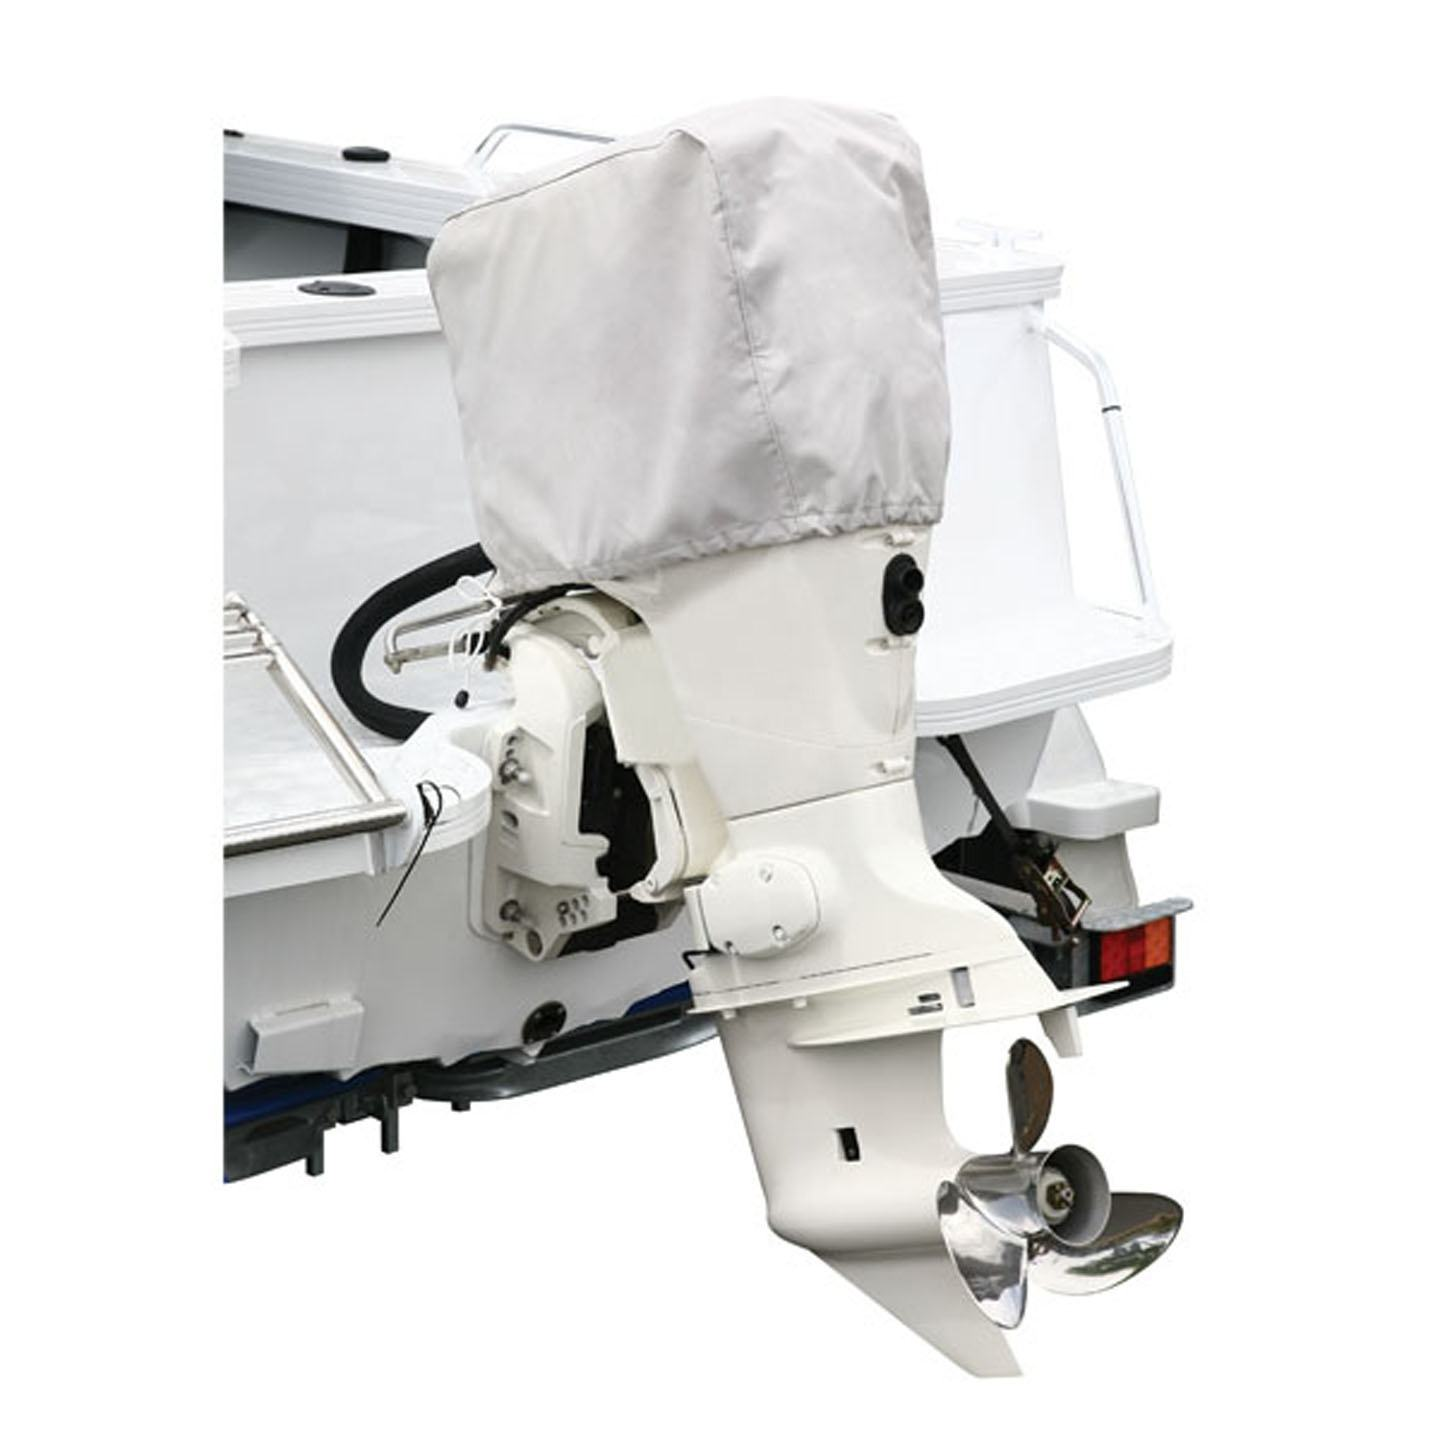 Outboard boat engine cover